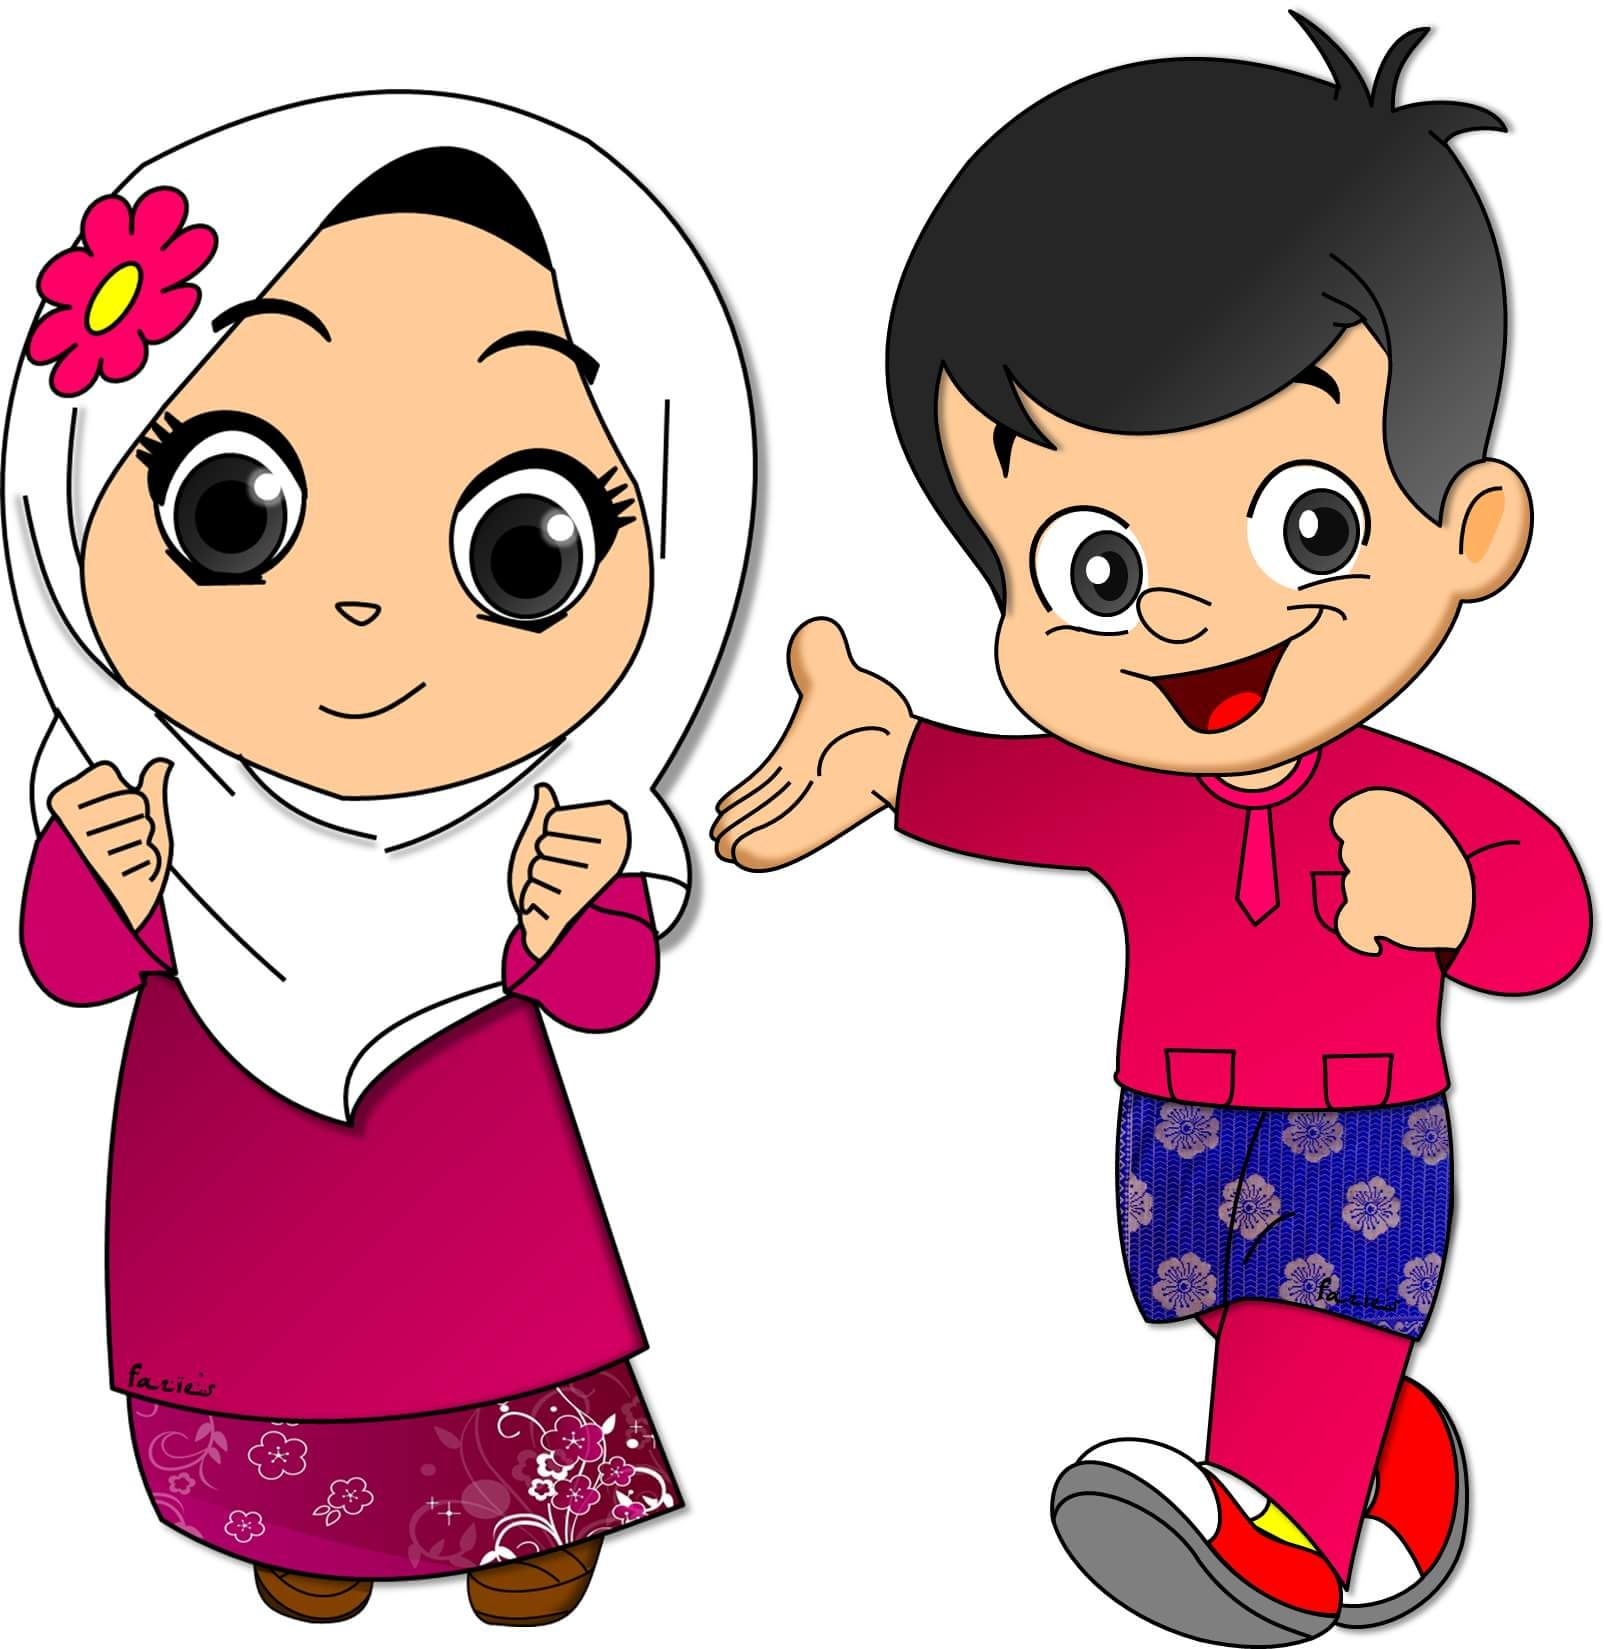 Muslim Clipart at GetDrawings.com.